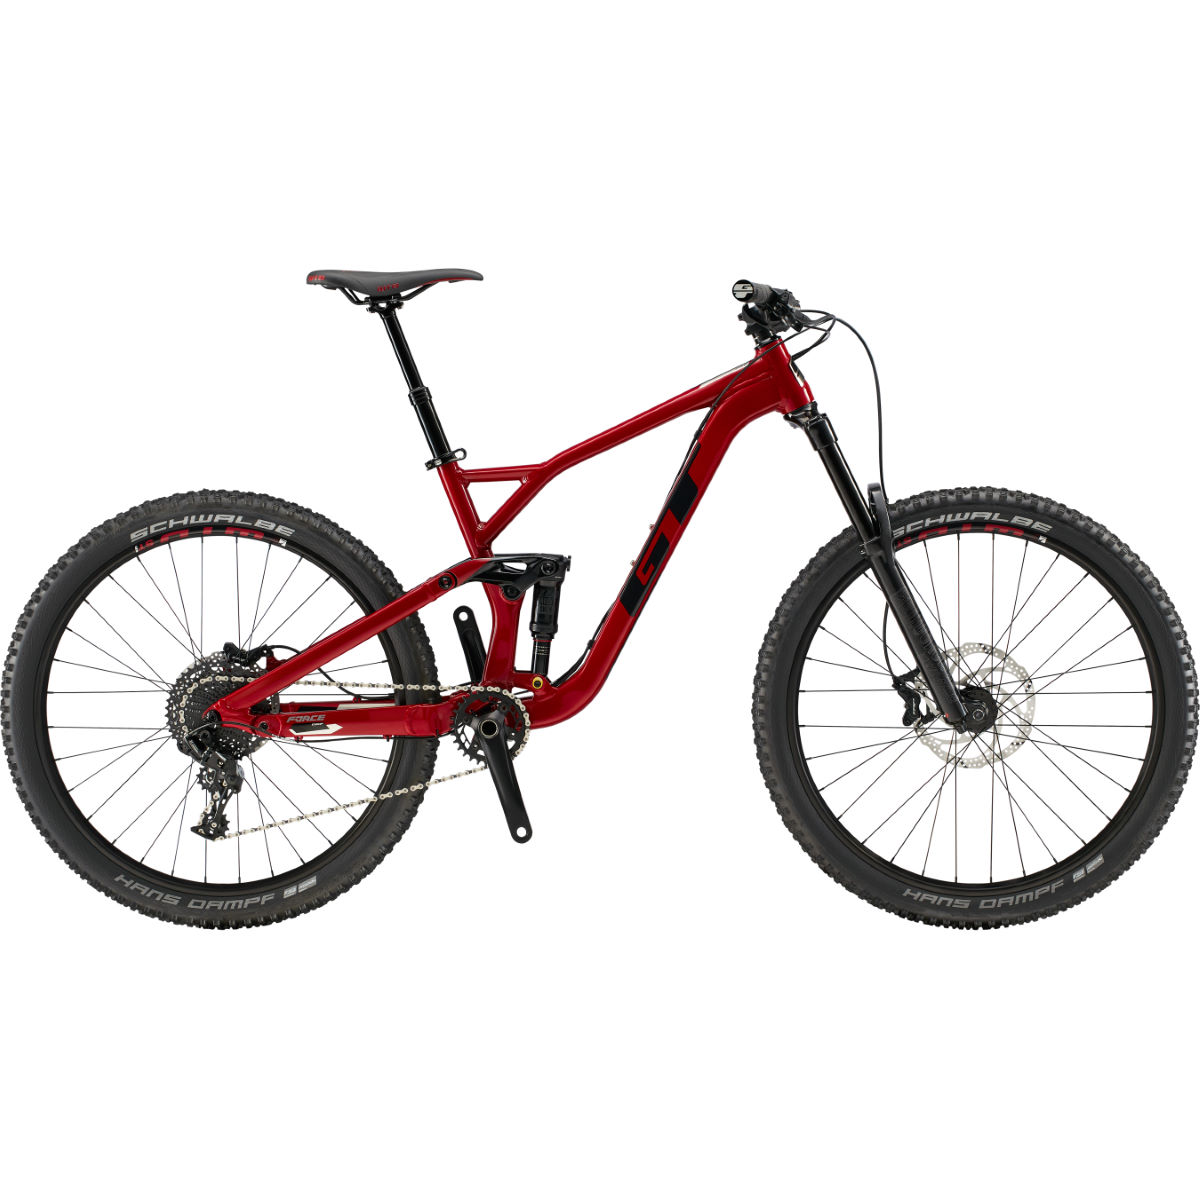 GT Force AL Comp (2019) Bike - Bicicletas de MTB de doble suspensión